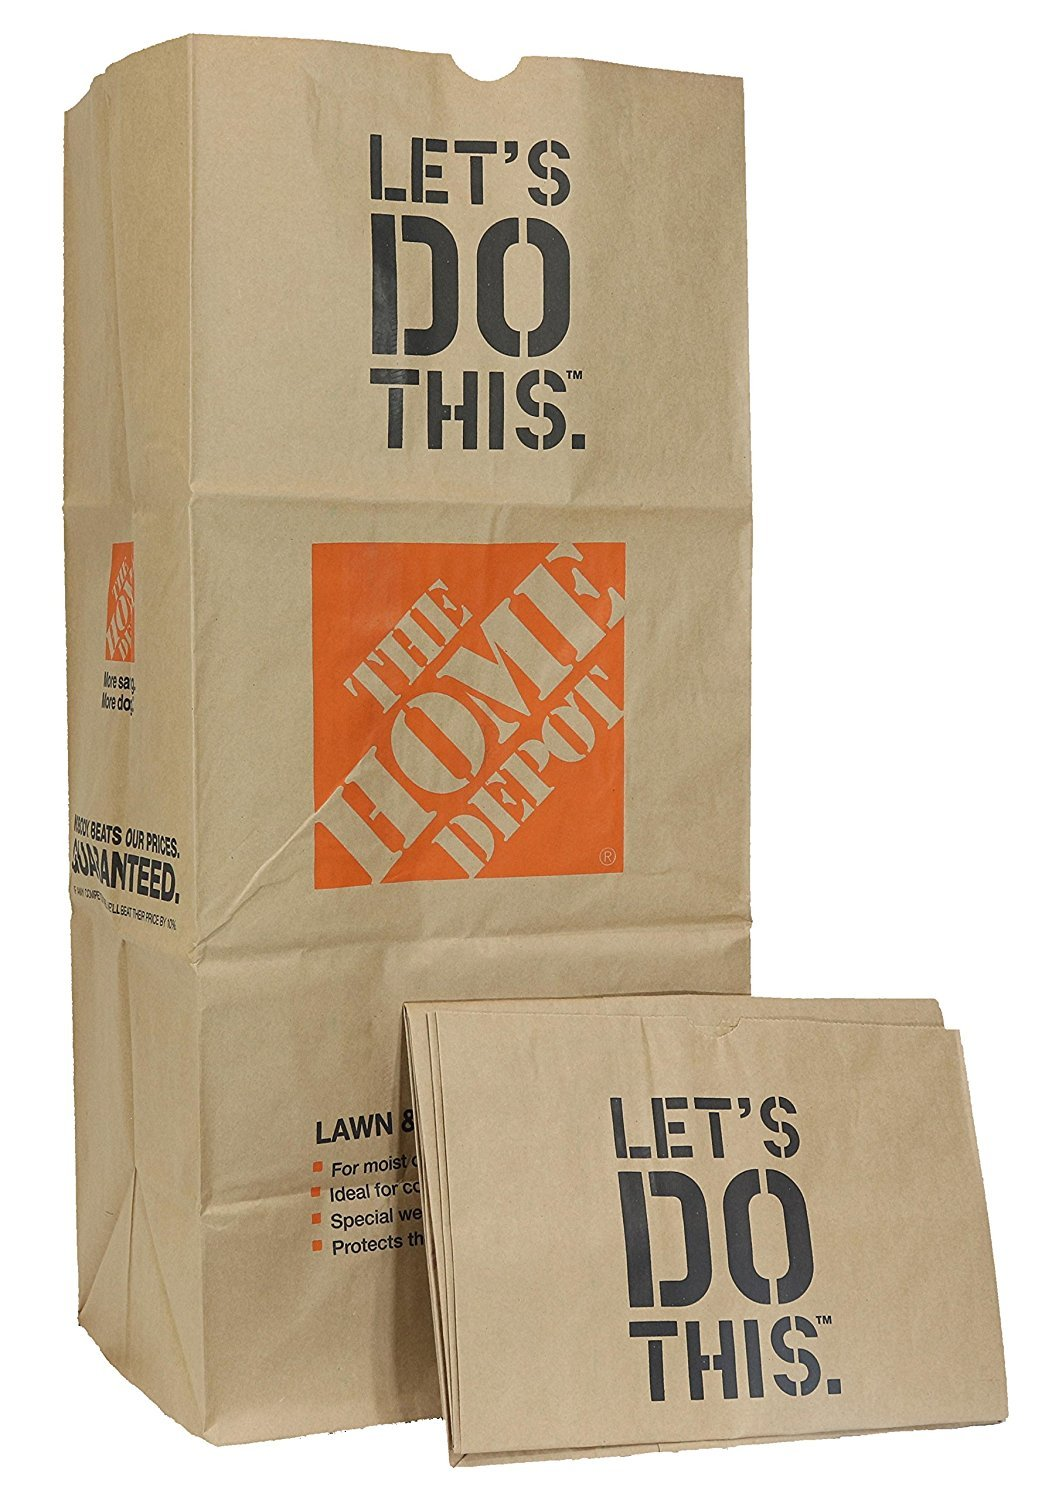 The Home Depot 49022-10PK Heavy Duty Brown Paper Lawn and Refuse Bags for Home and Garden, 30 gal (Pack of 10)